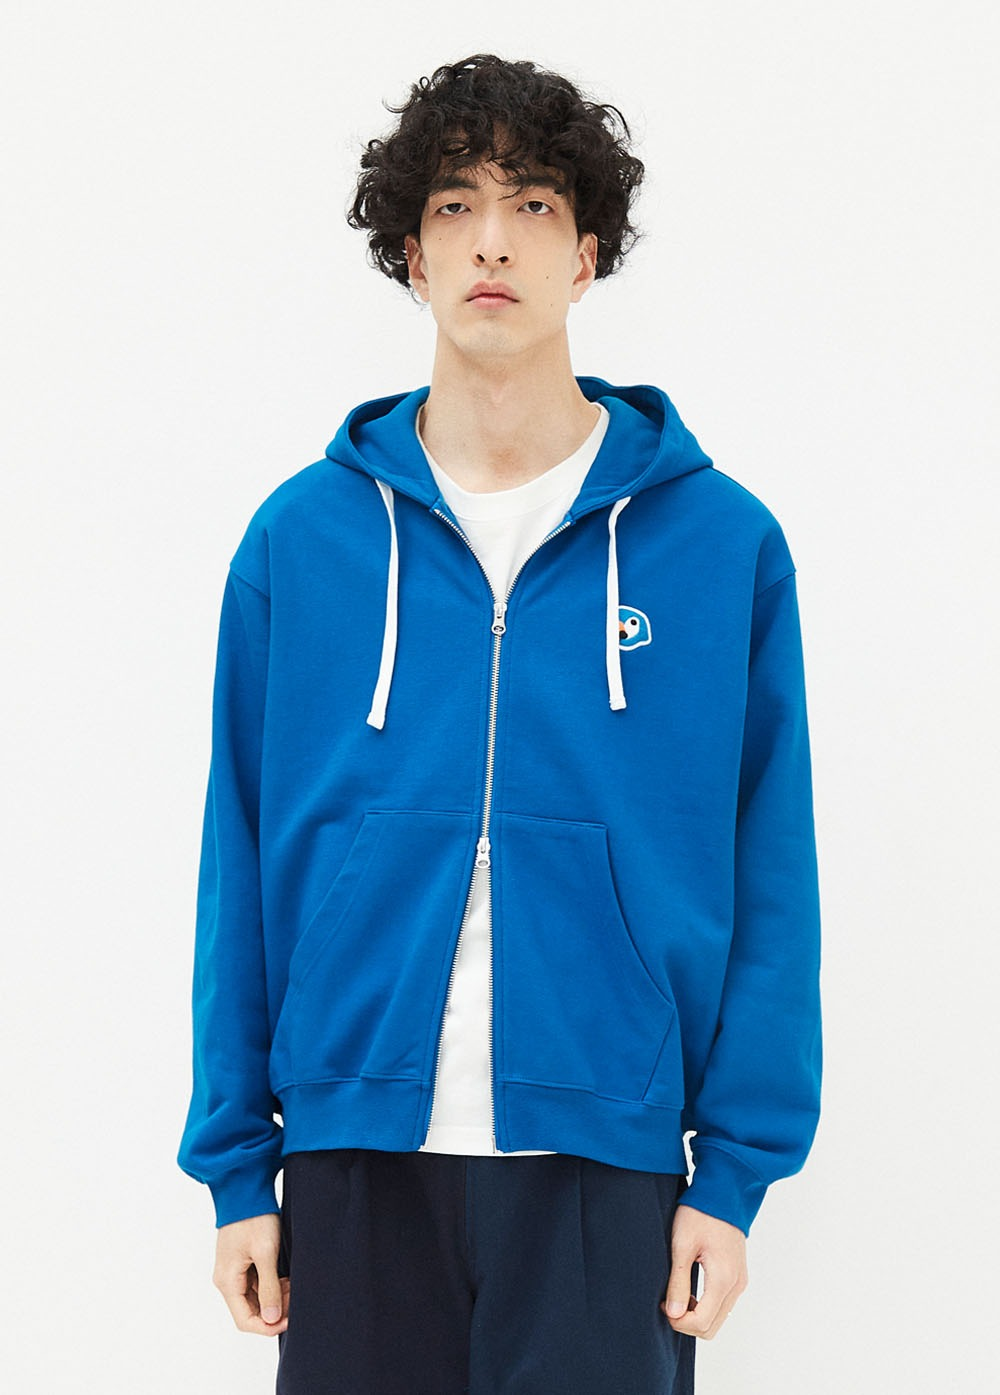 KANCO LOGO ZIP UP HOODIE blue